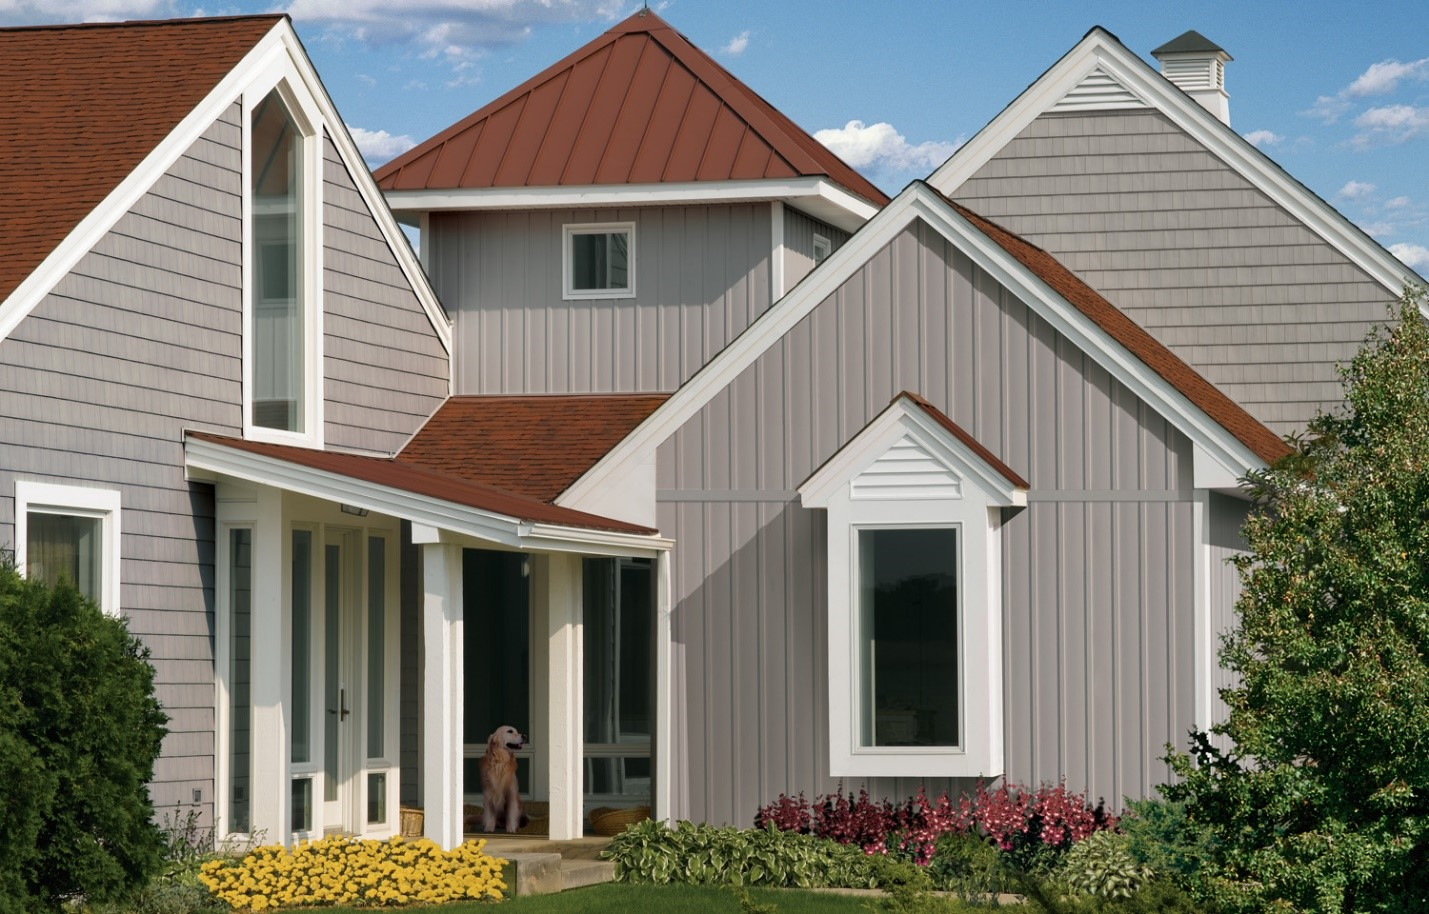 Horizontal Board And Batten Siding Vertical House Siding Considerations And Design Ideas